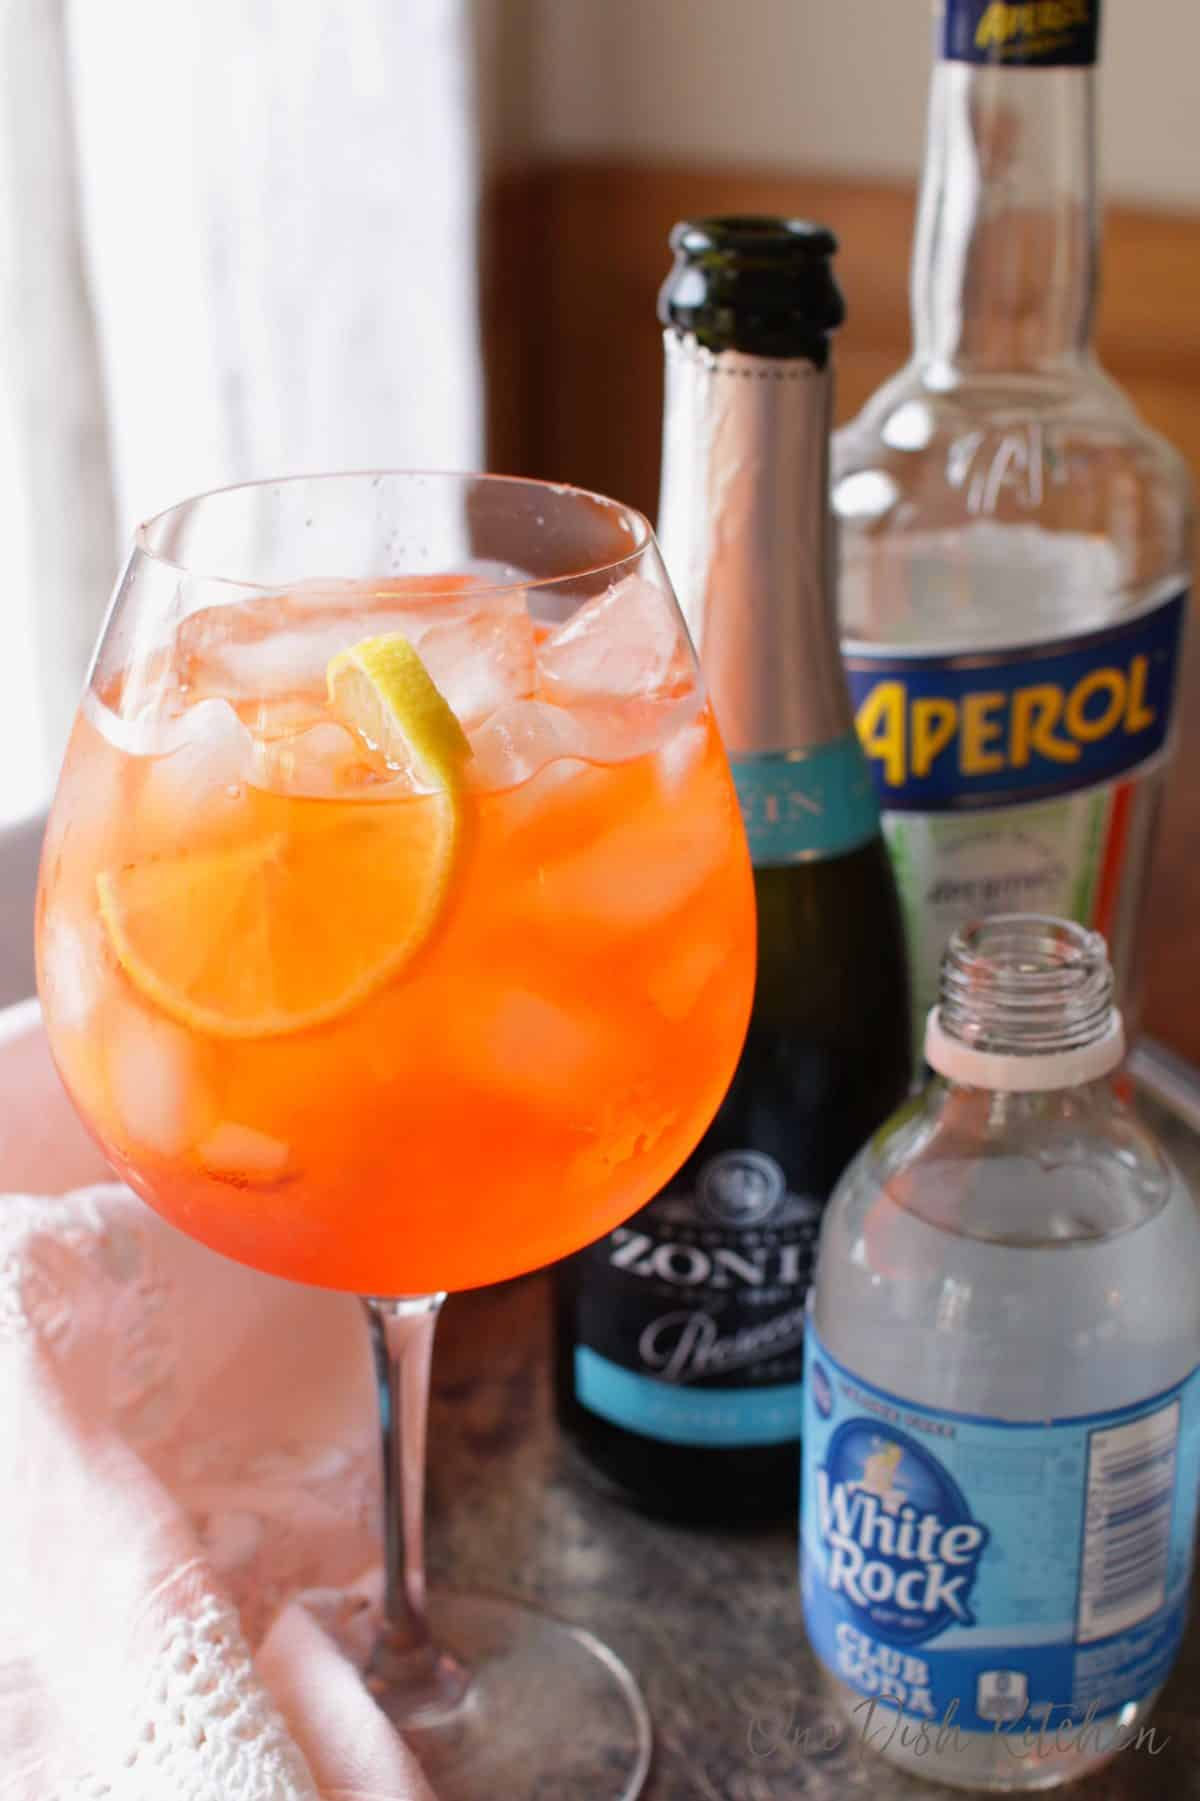 An aperol spritz and a small bottle of champagne, aperol and club soda